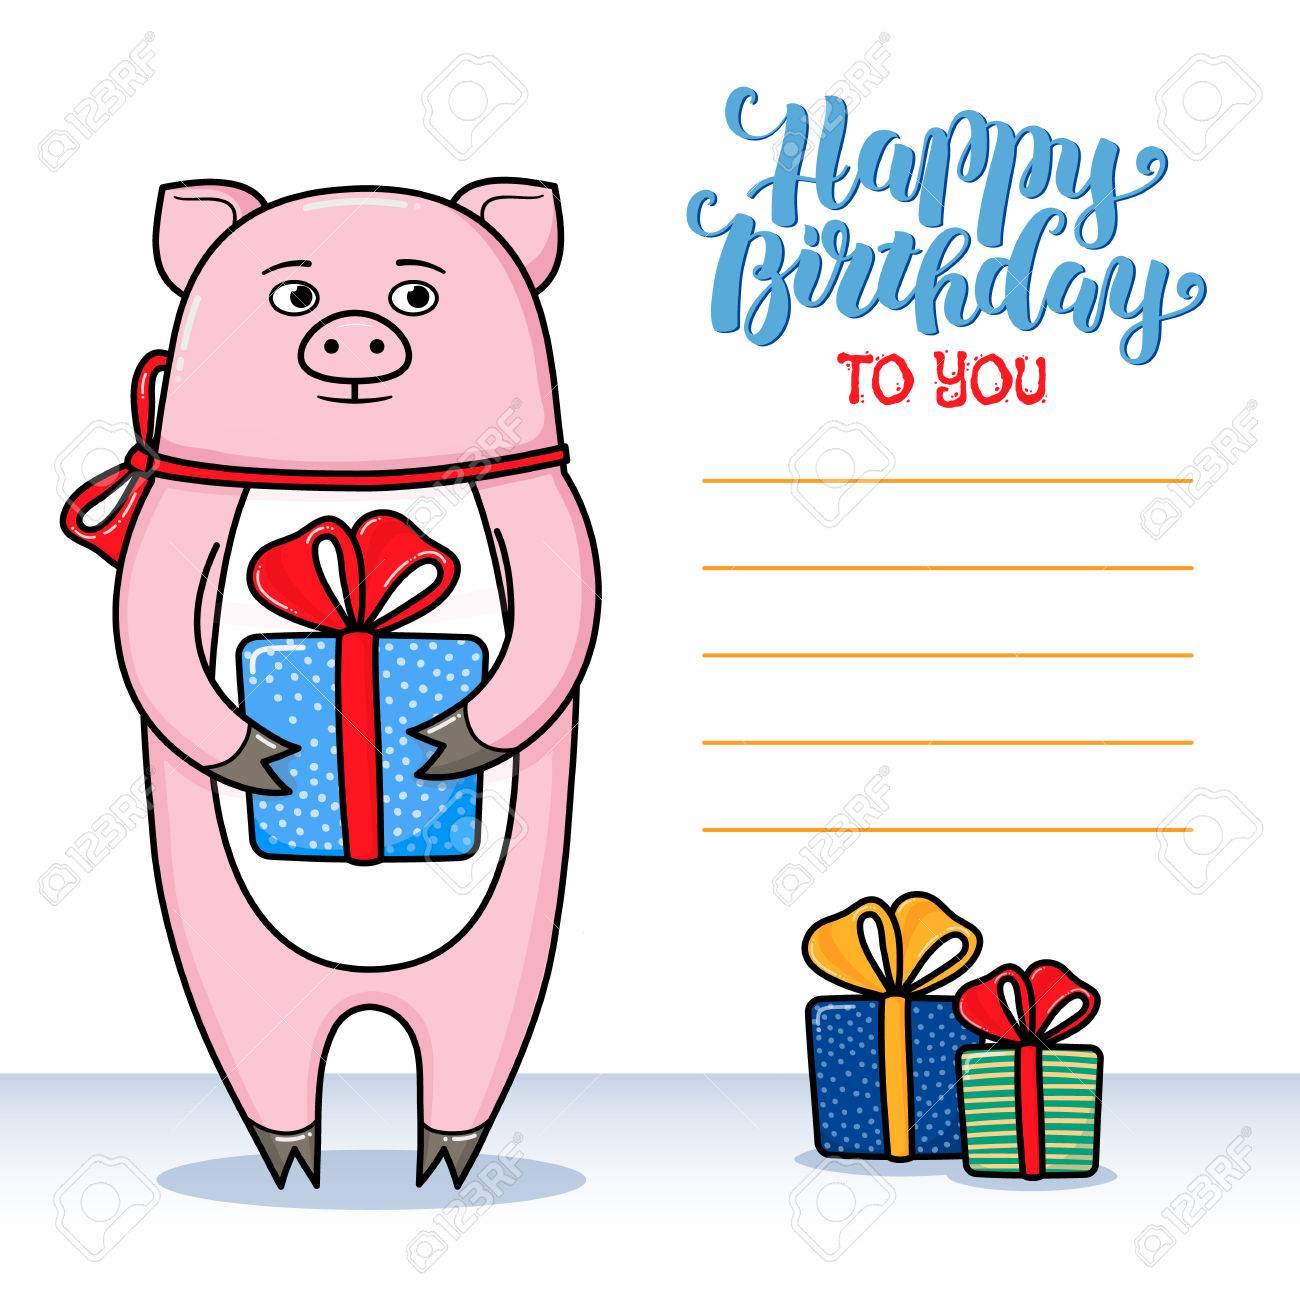 funny birthday card signatures ; 67655951-happy-birthday-greeting-card-with-pig-holding-a-gift-lettering-and-lines-for-congratulations-and-sig